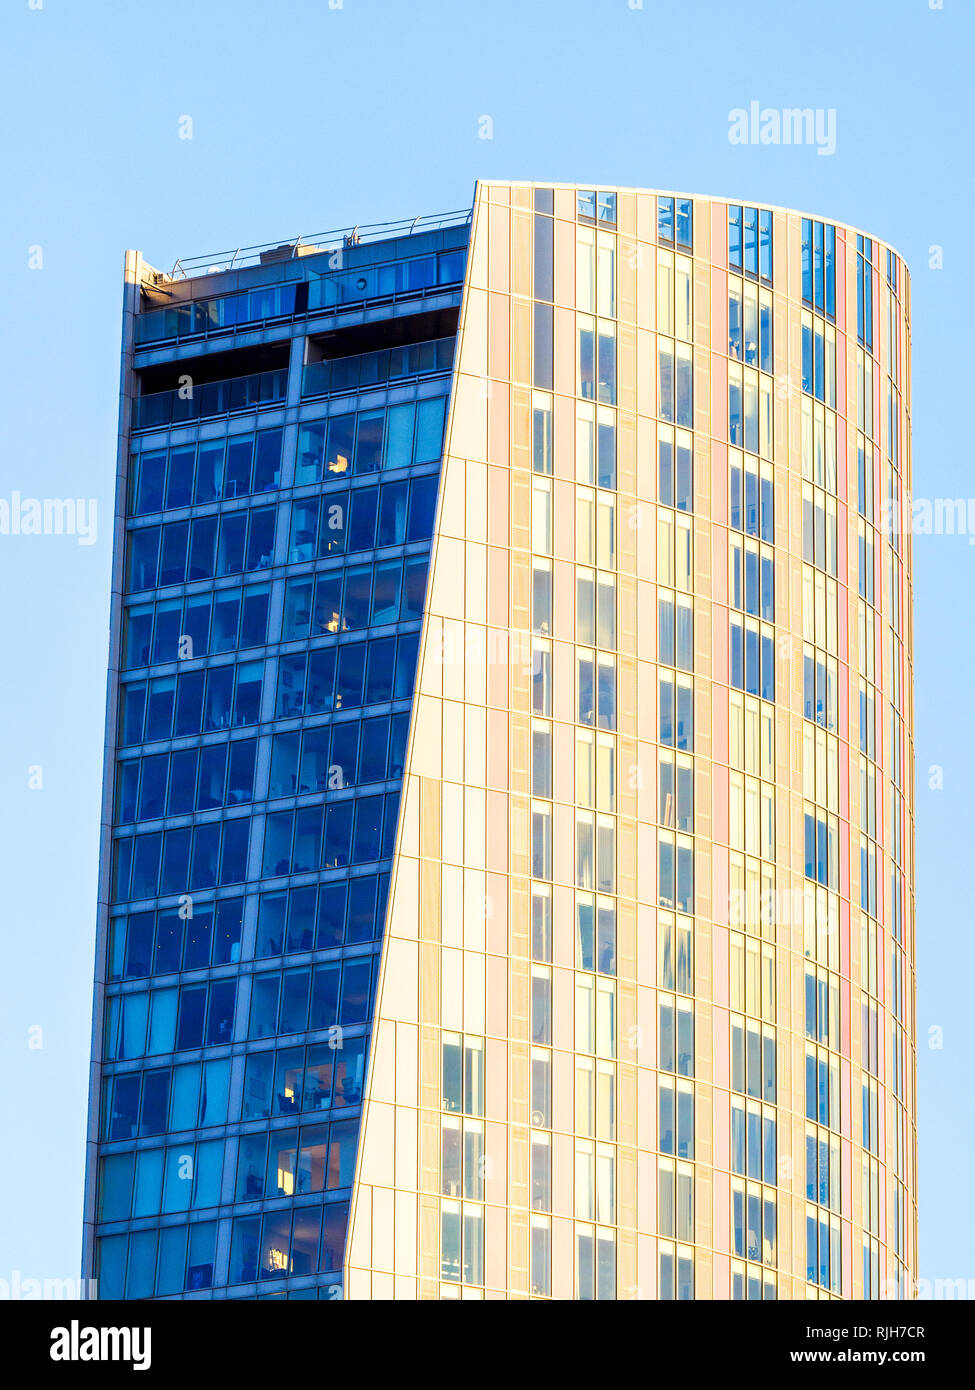 Stratford Halo residential tower block - East London, England - Stock Image